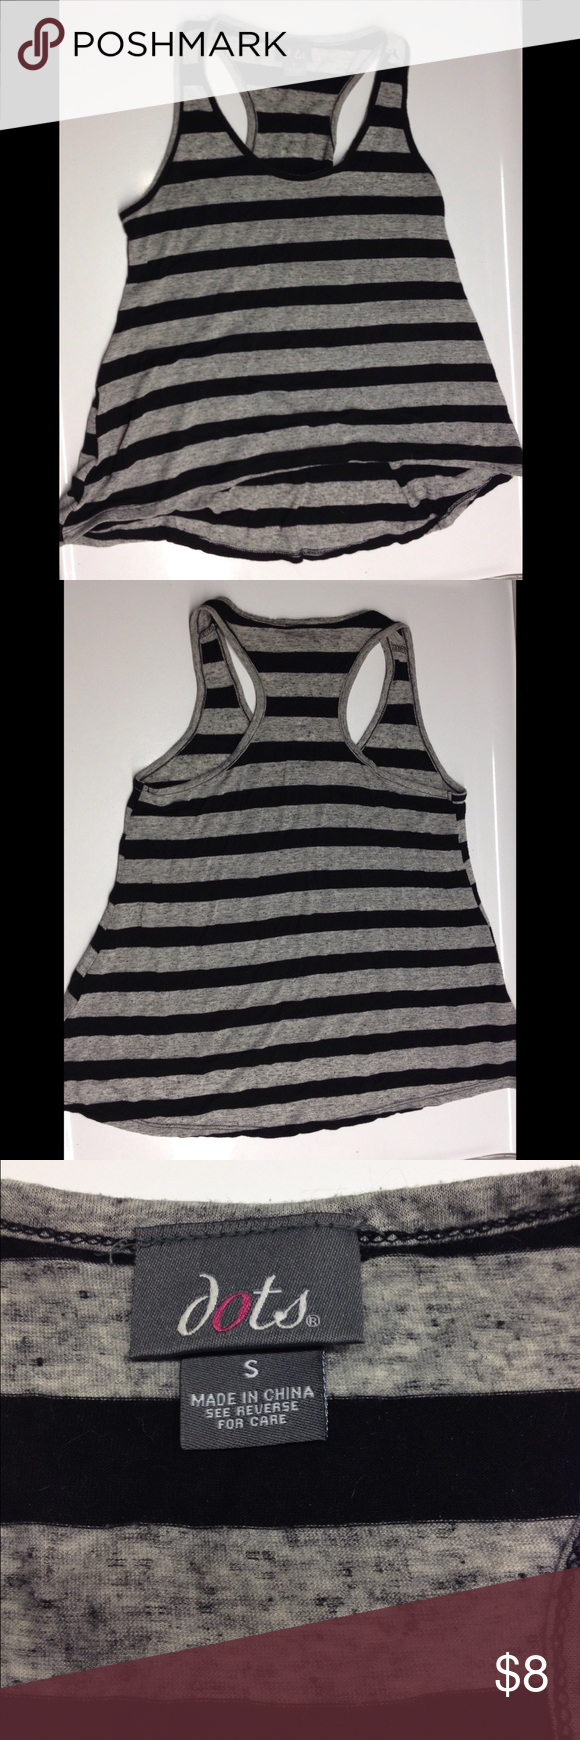 Striped tank Black and gray striped  racer back tank with flowy high/low hem. Dots Tops Tank Tops